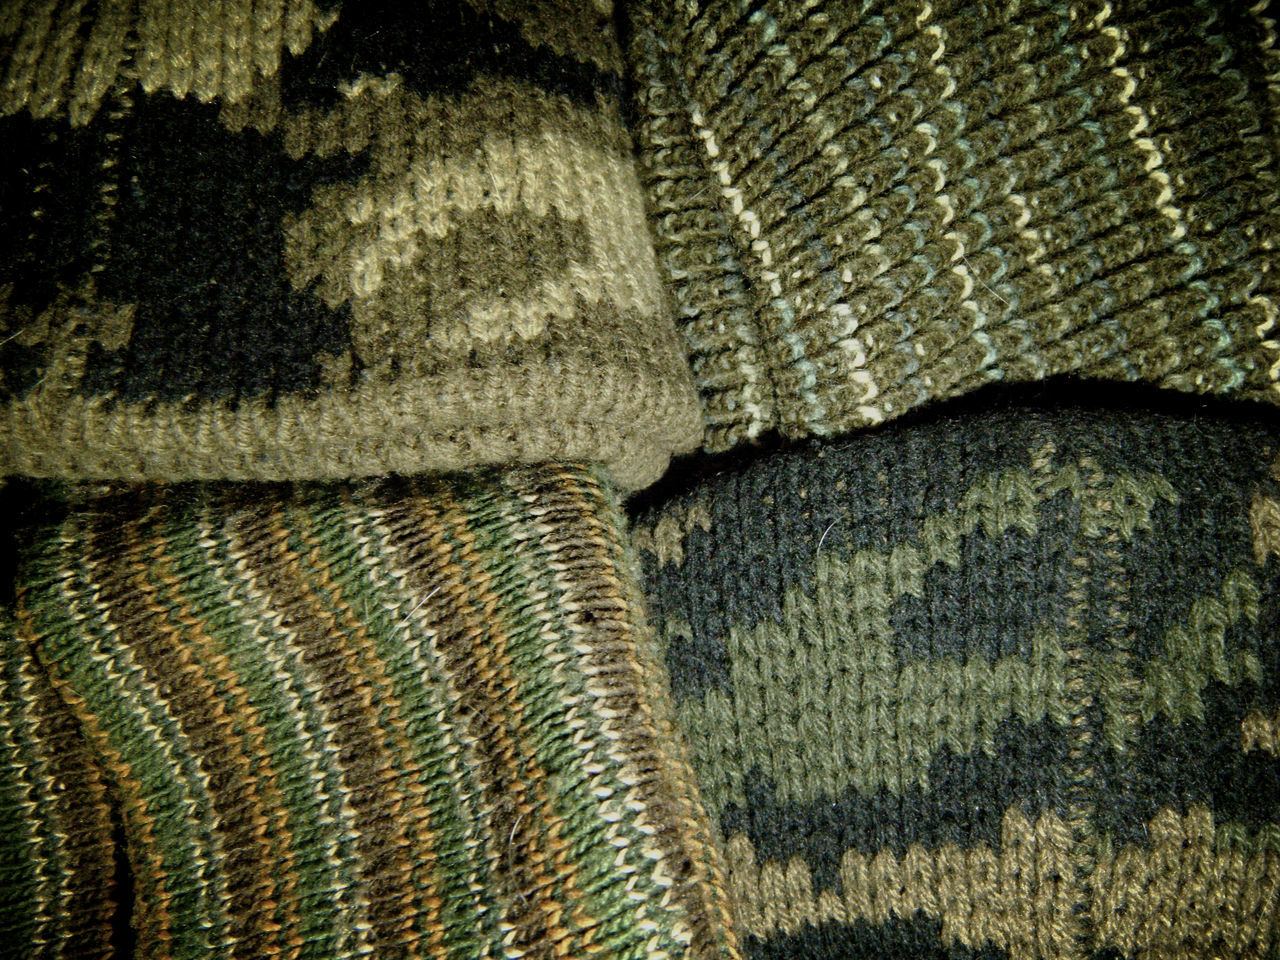 Pattern Pieces Camouflage Camo Knit Weave Drab Beanie Whatever Style Military Surplus Fashion Blending In